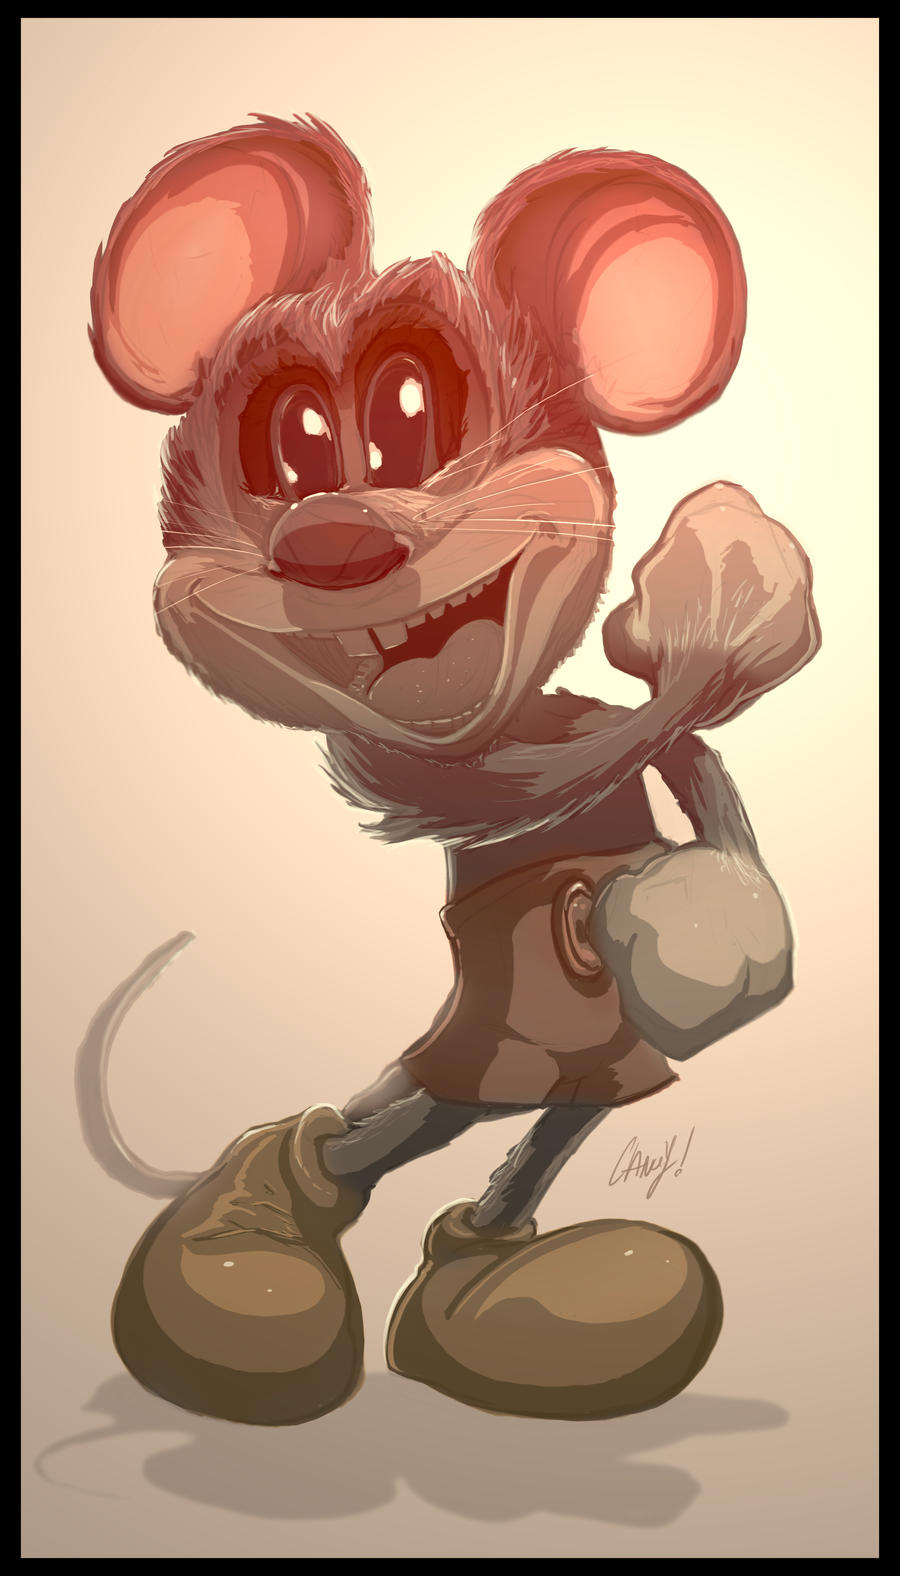 That Mouse